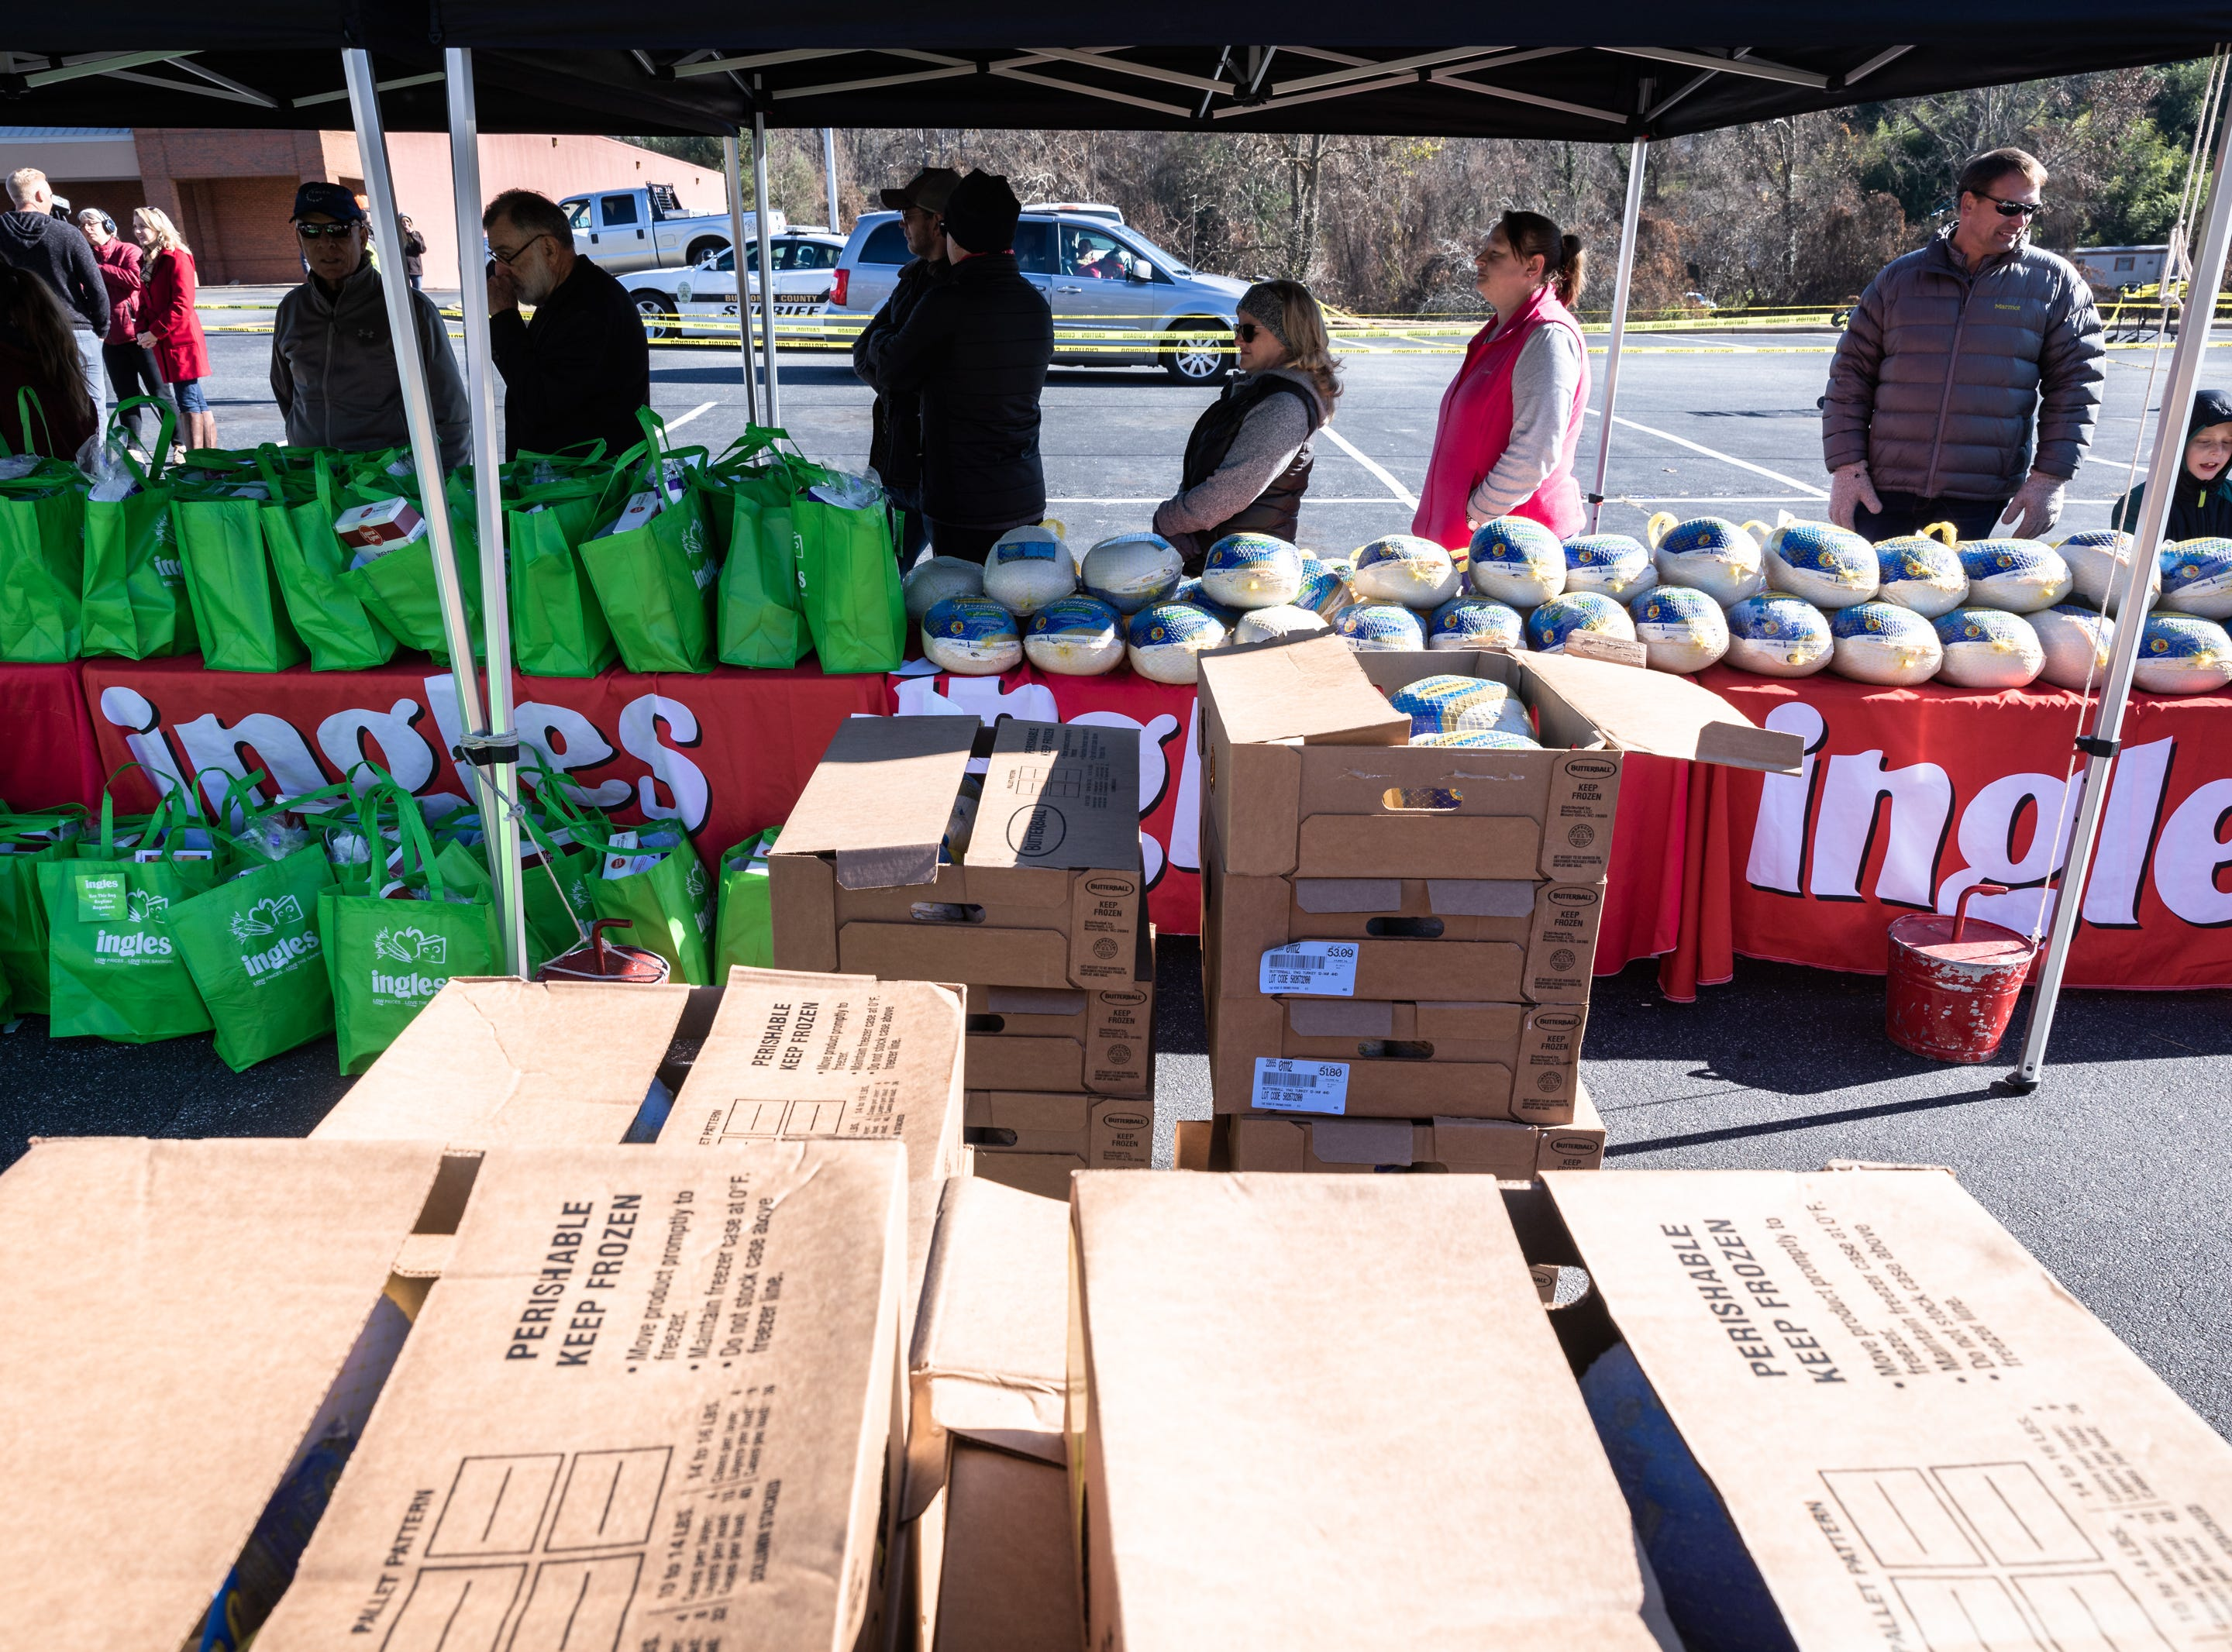 Volunteers with Eblen Charities line up with Thanksgiving meals to bring to clients' vehicles at Ingles in the South Forest Shopping Center, during their annual turkey giveaway Nov. 21, 2018. More than 13,000 meals were provided to nearly 1,300 families this year.